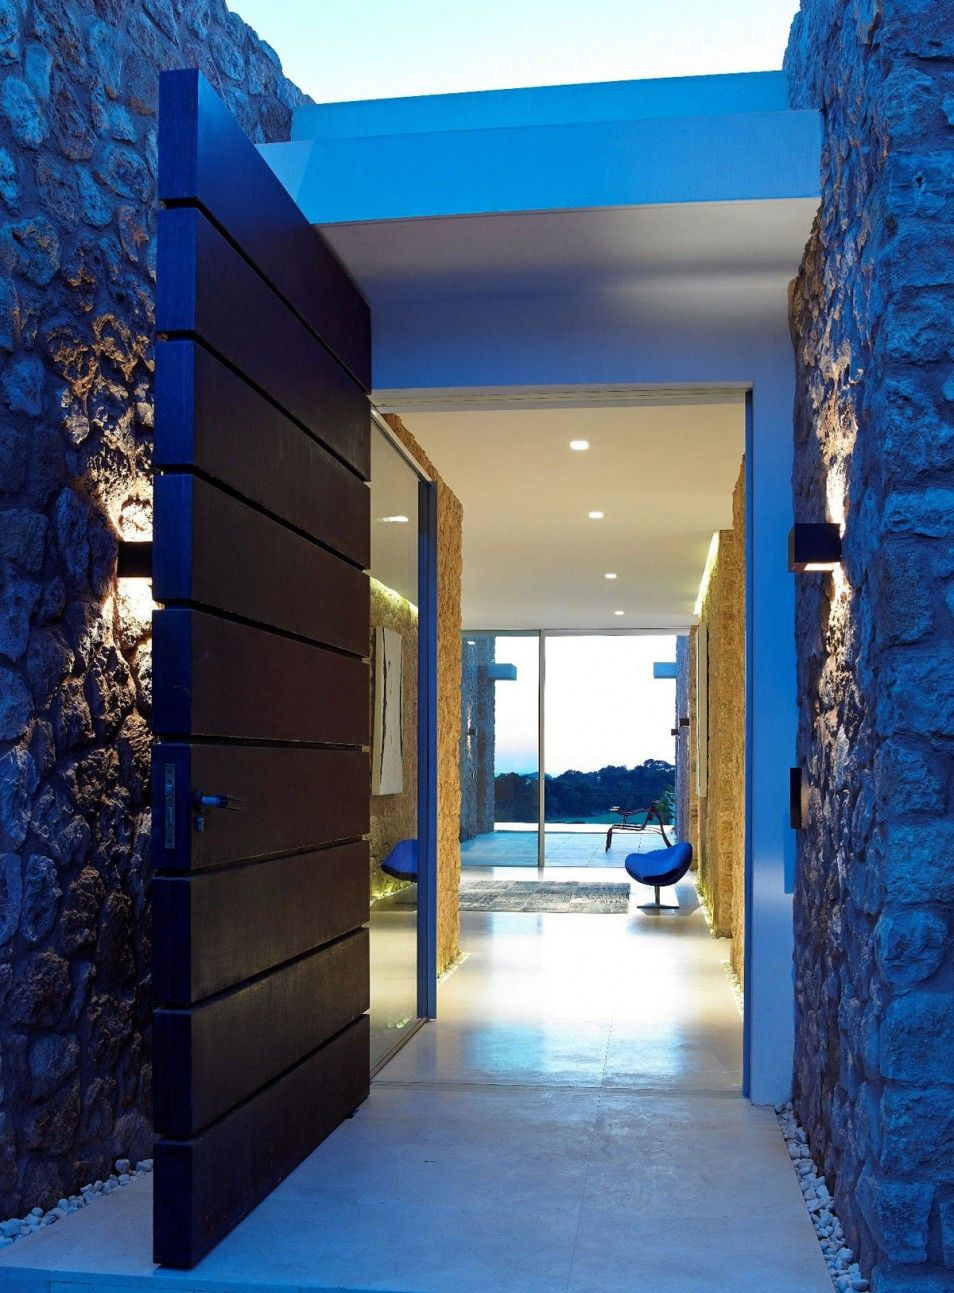 Delightful Astonishing Holiday Villa Inspiration : Striking Calaconta Home Design  Exterior With Modern Decoration Used Stone Wall And Wooden Door Desig.